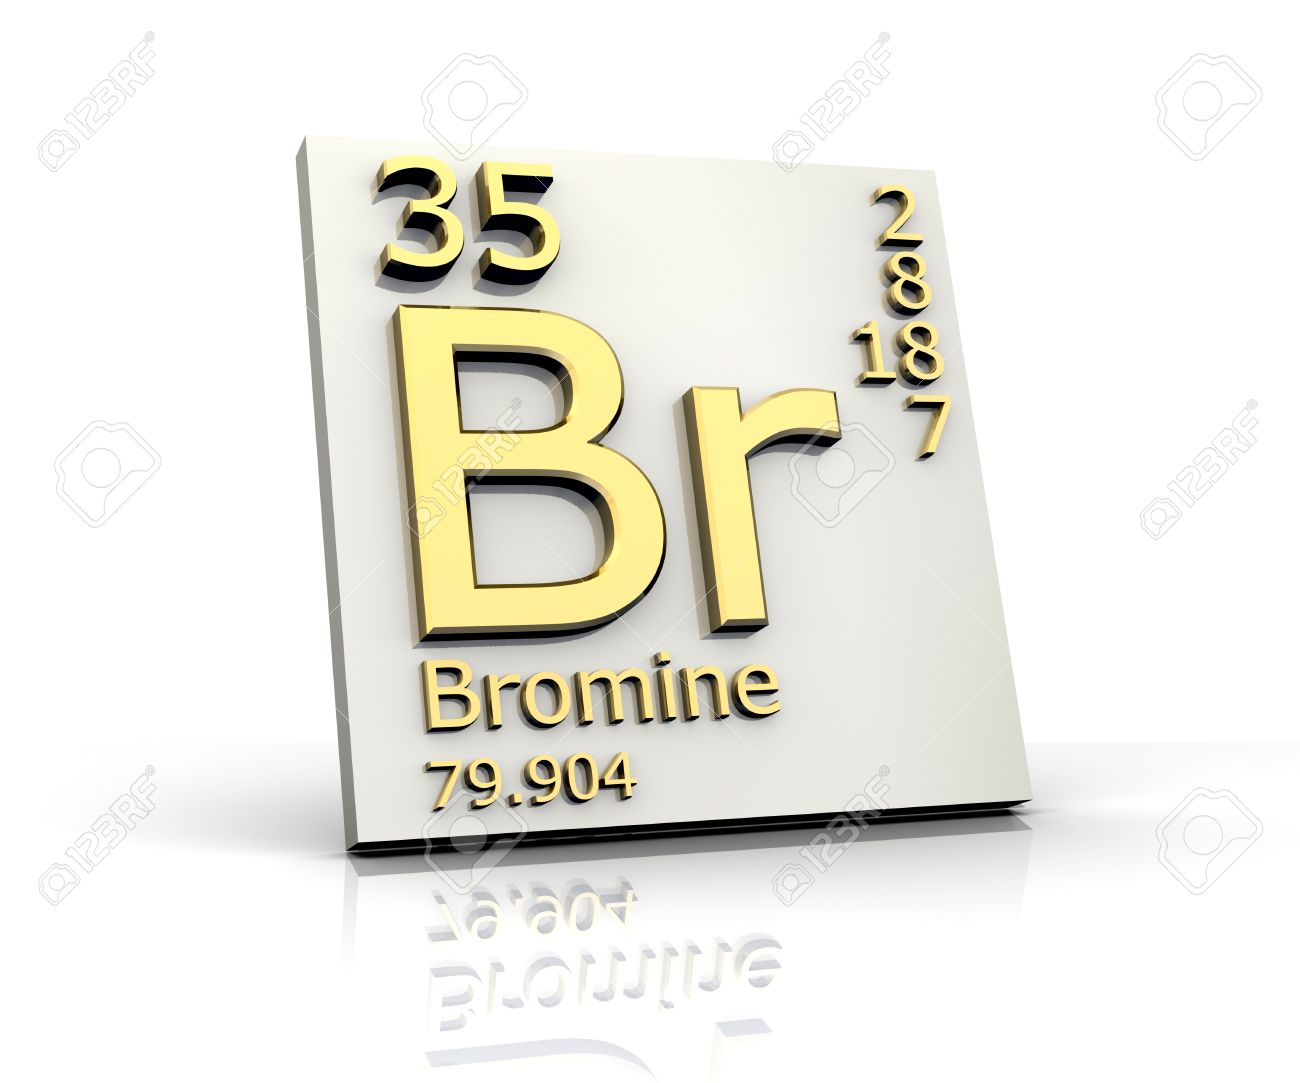 Bromine form periodic table of elements stock photo picture and bromine form periodic table of elements stock photo 4315570 urtaz Images